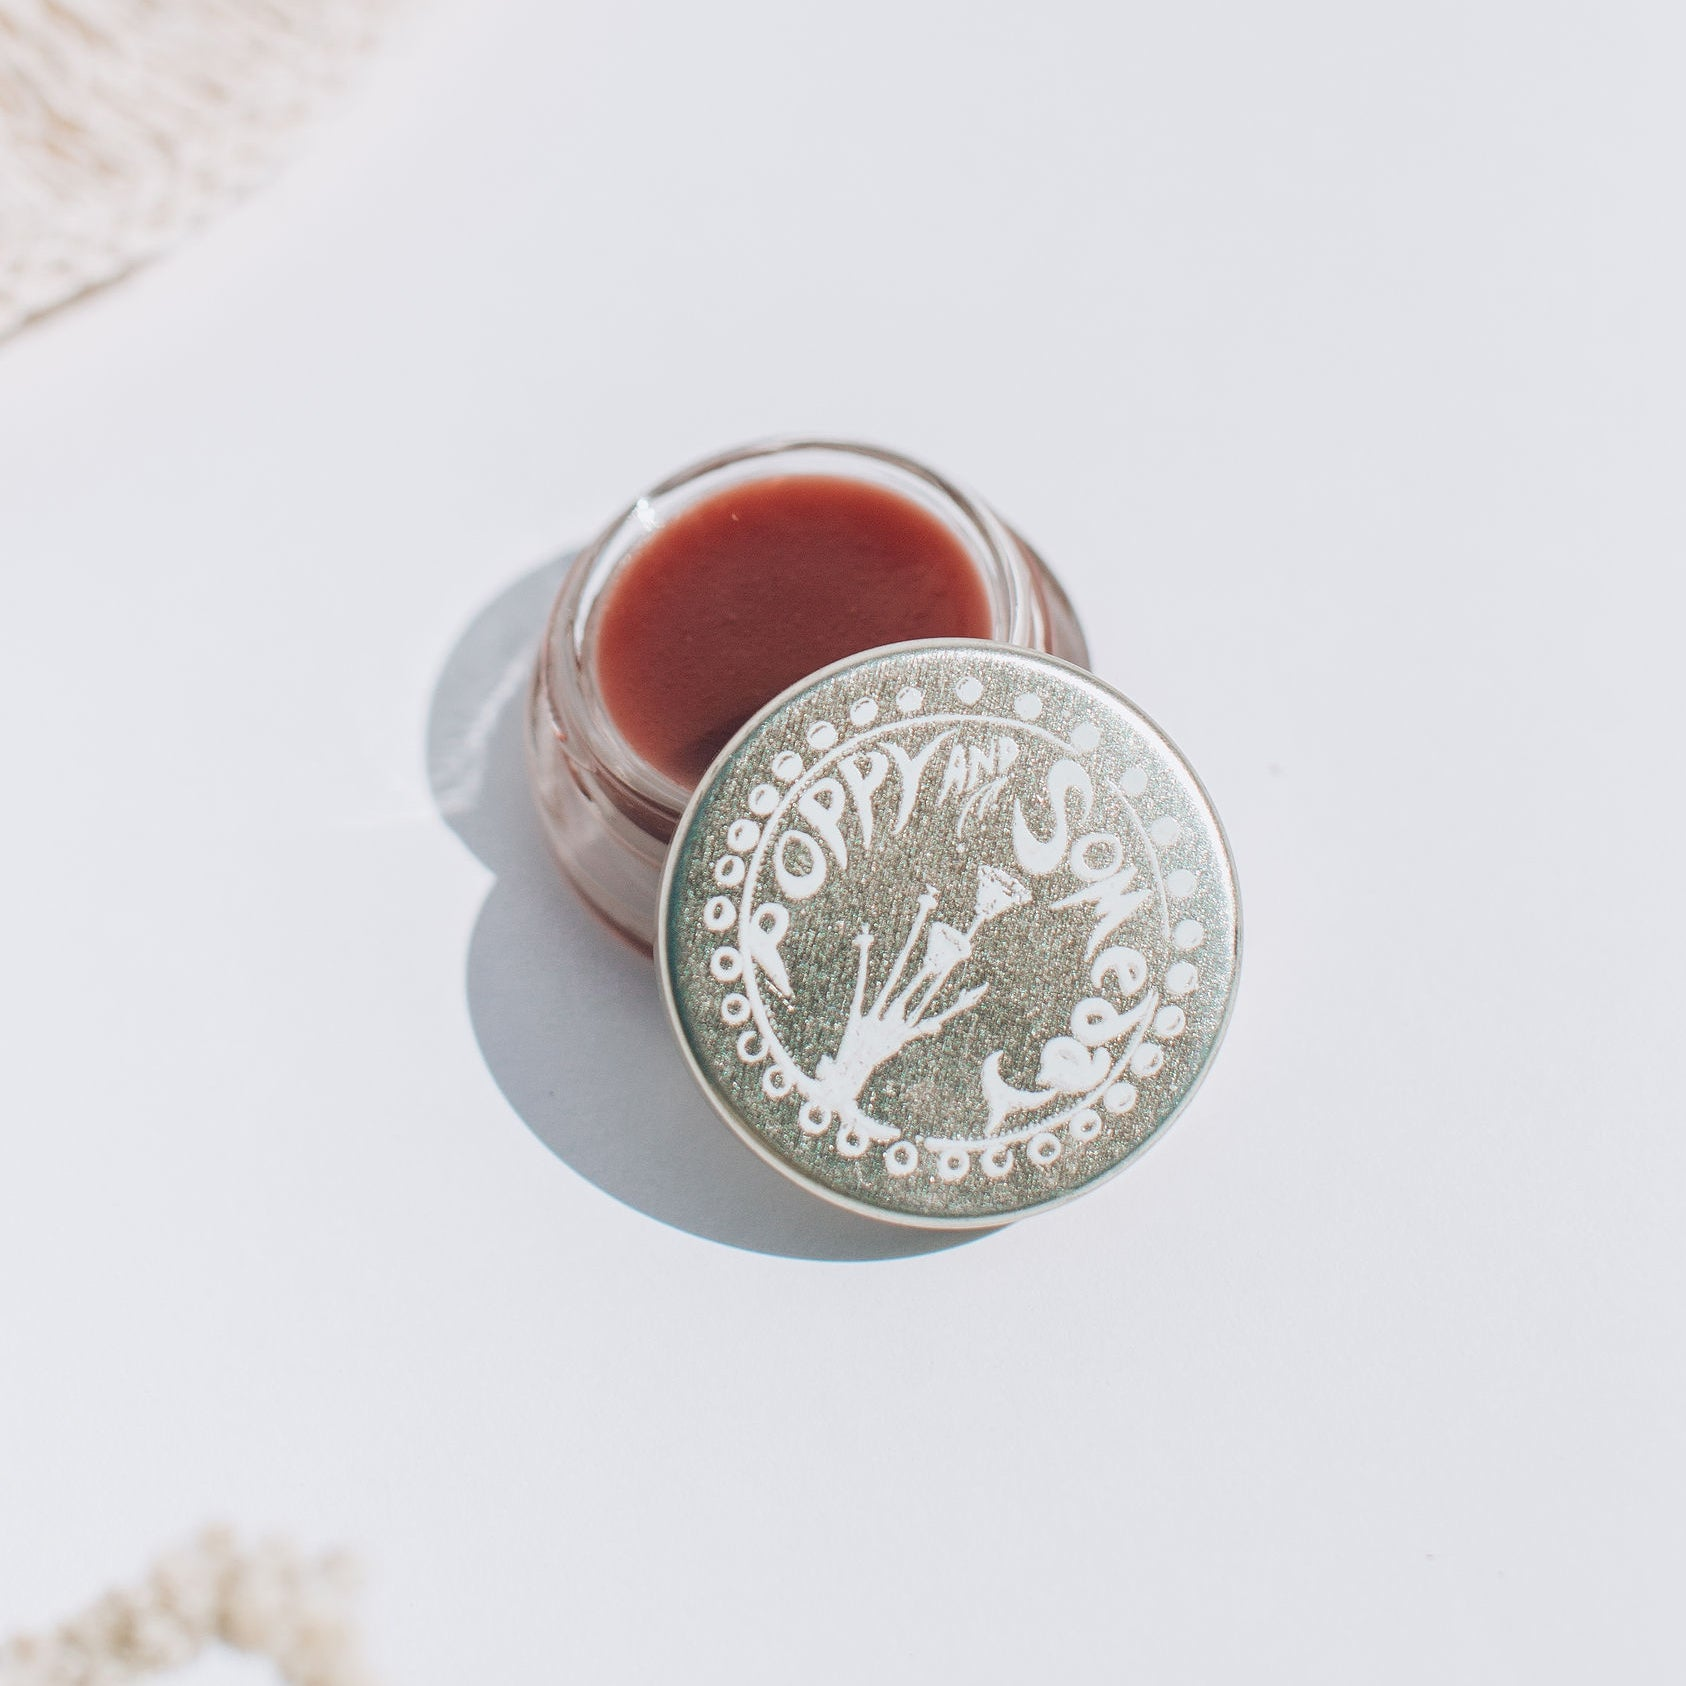 Cardamom Herbal Lip Tint